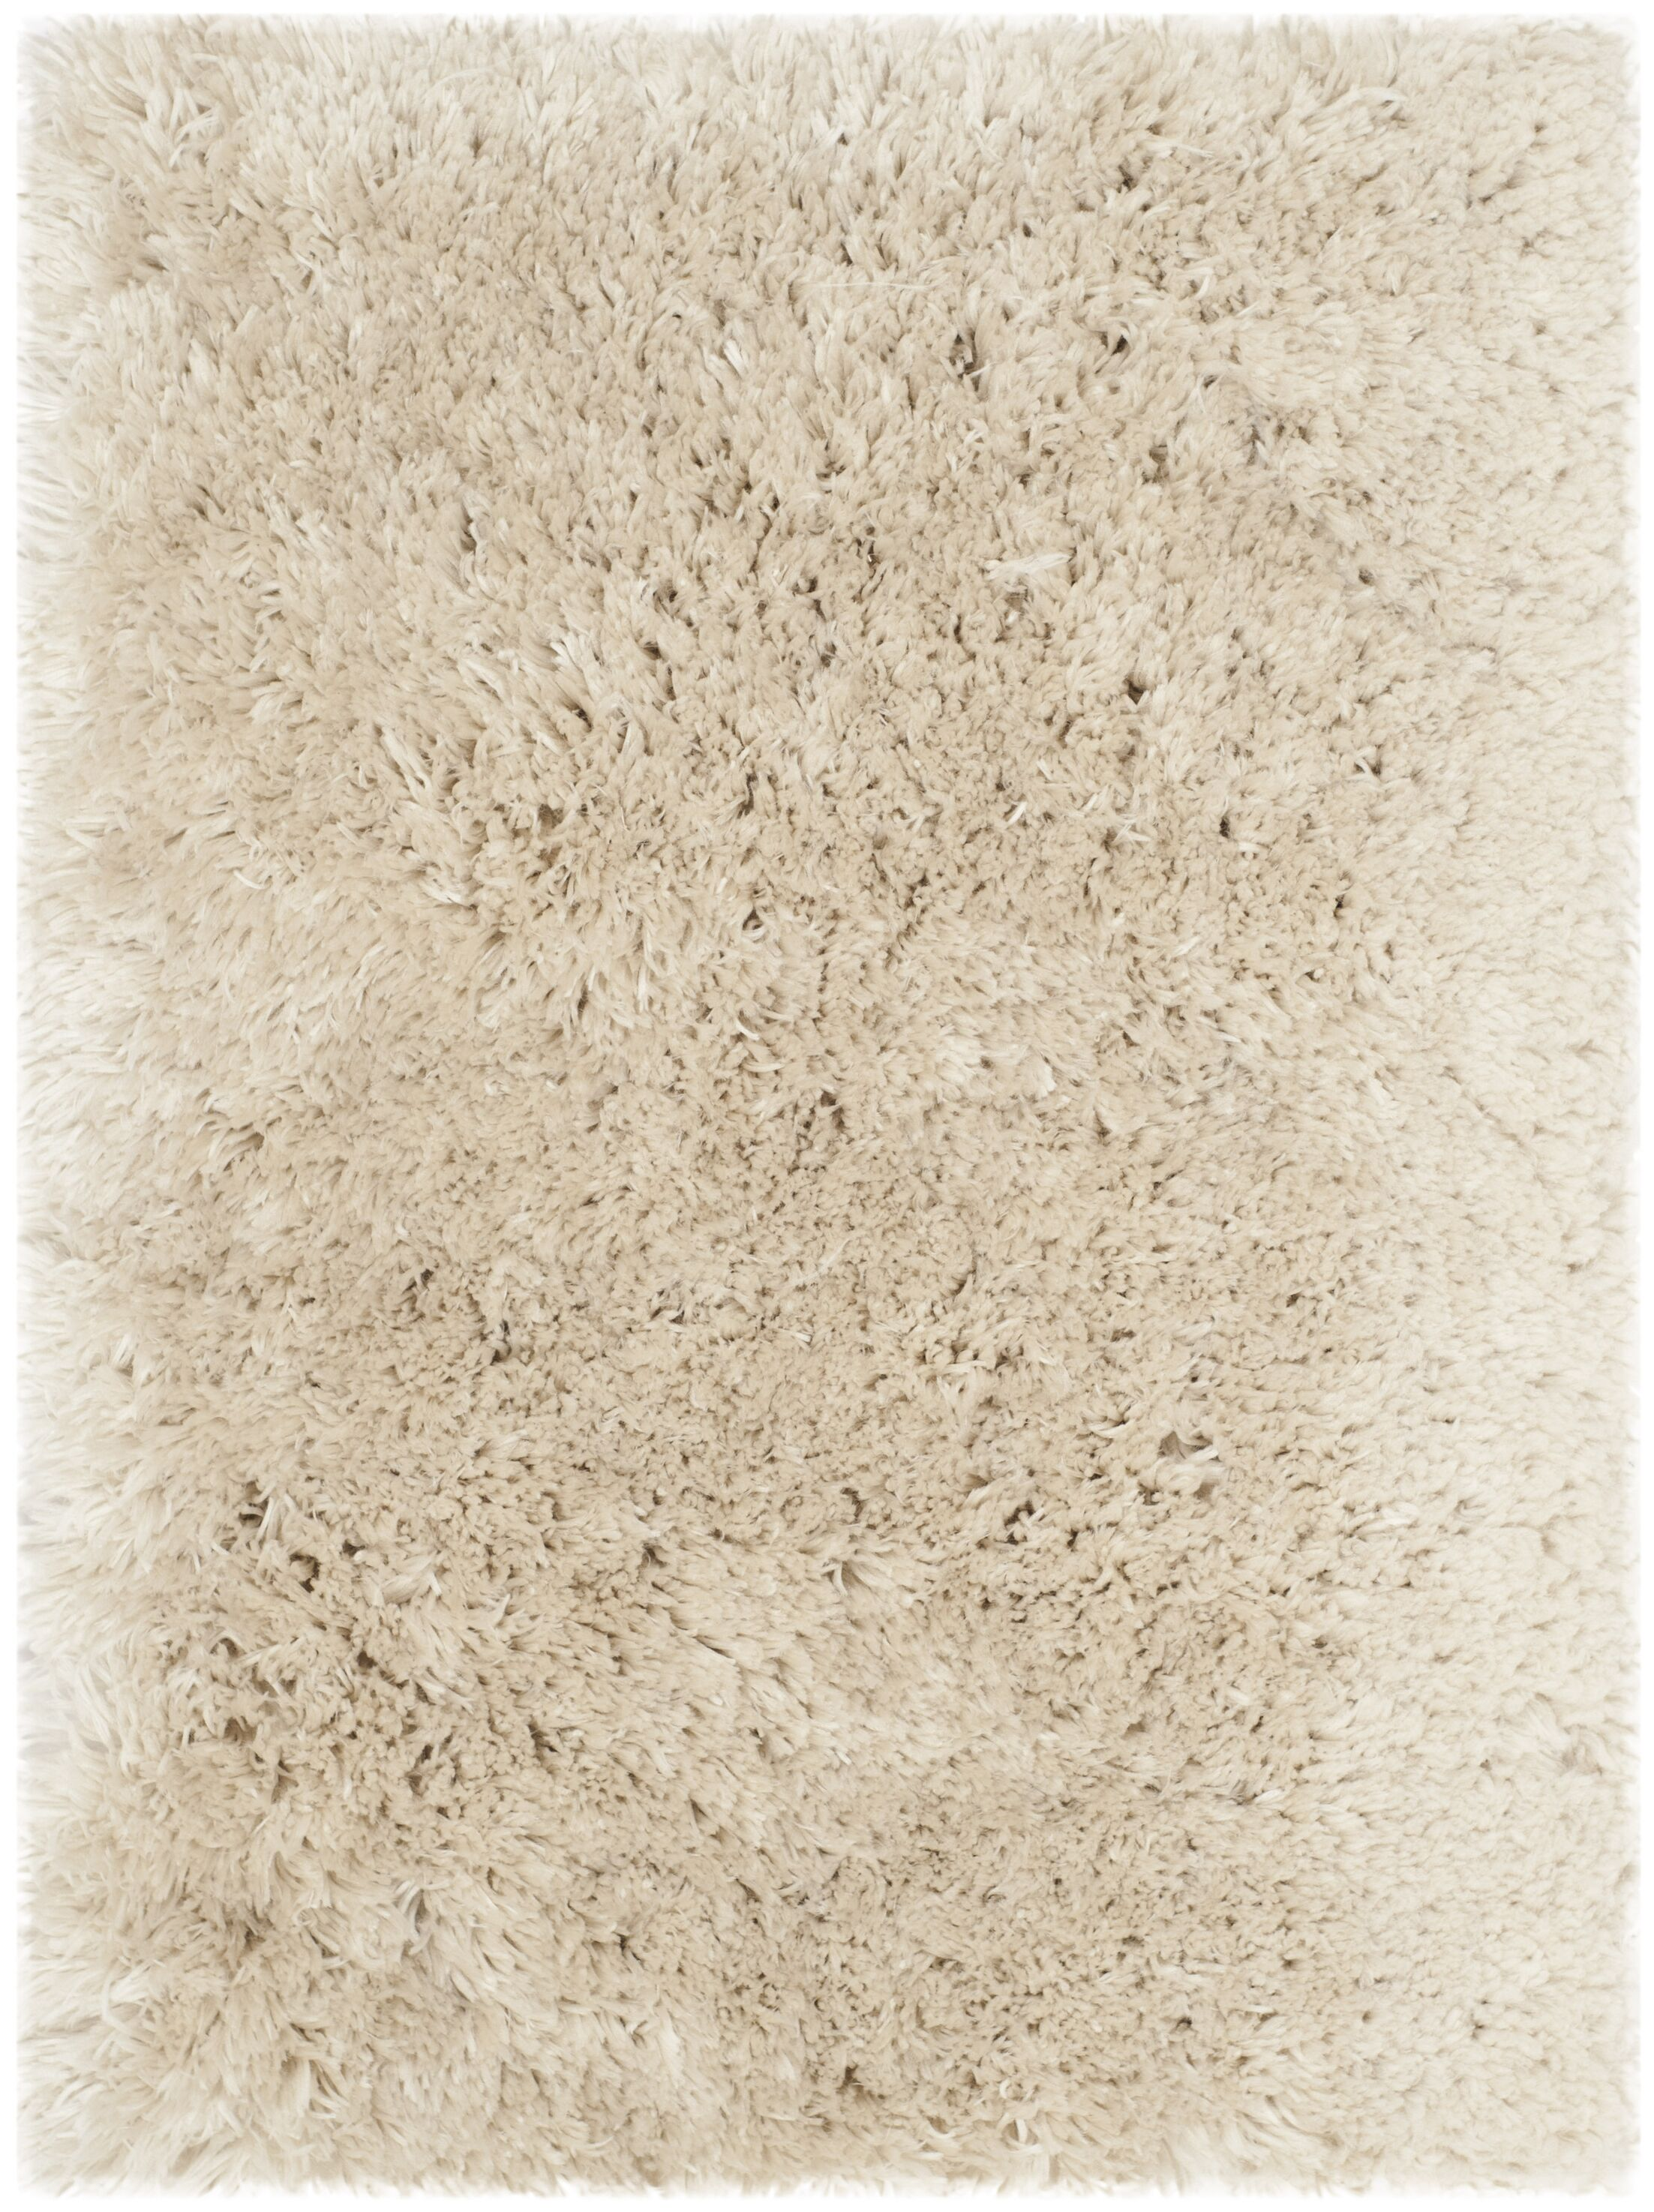 Dax Shag Hand-Tufted Beige Area Rug Rug Size: Rectangle 7'6